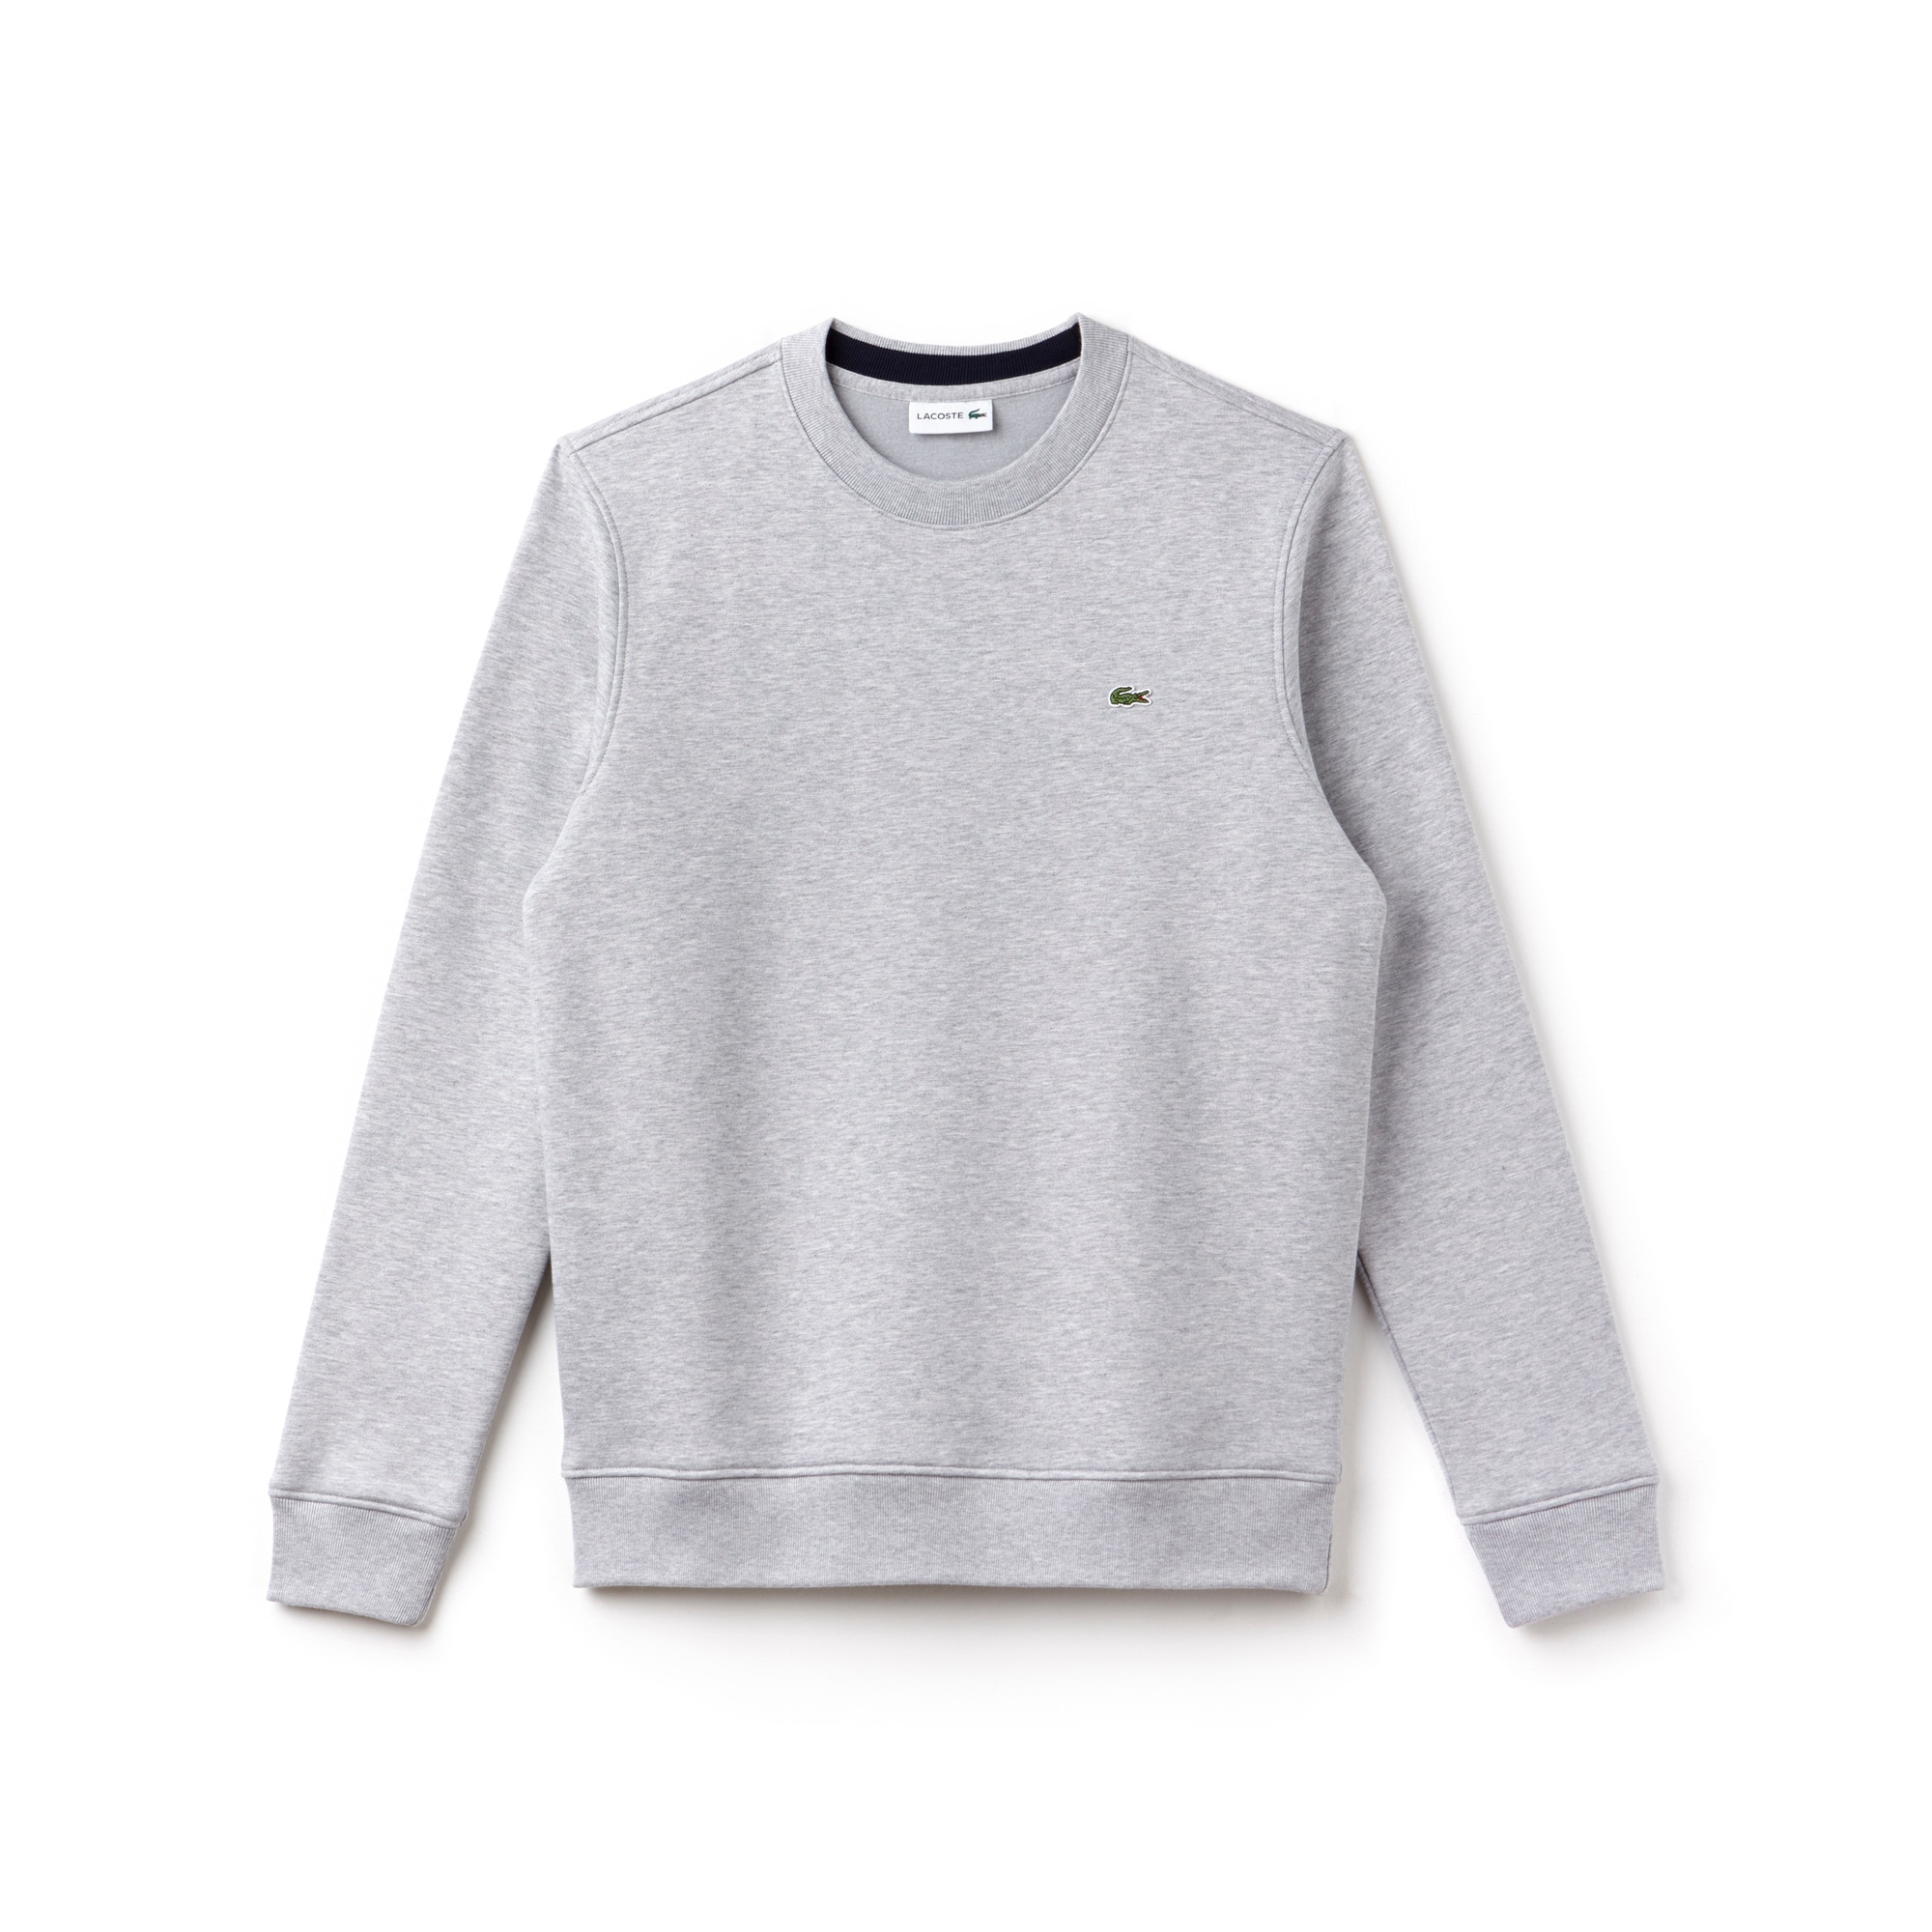 Men's Brushed Fleece Sweatshirt